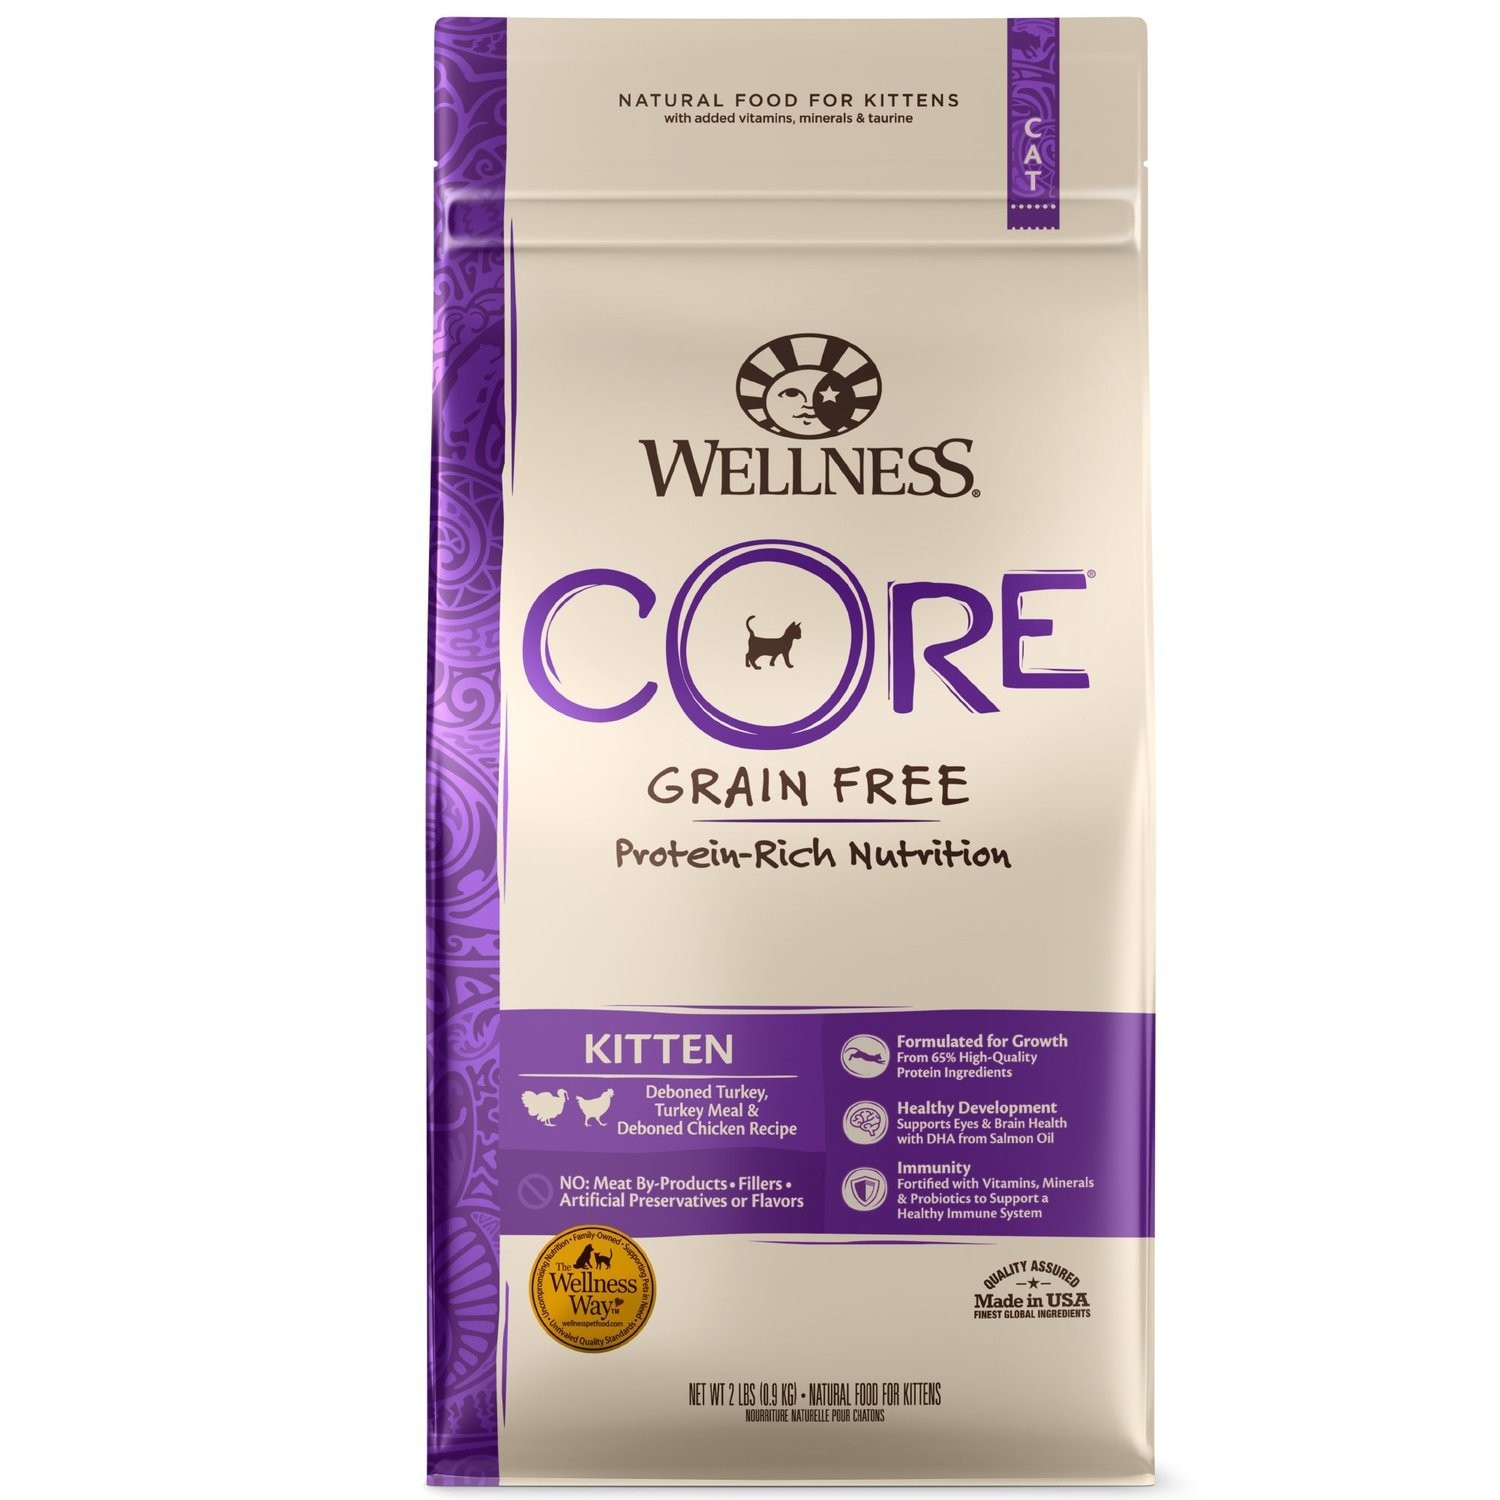 Wellness CORE Grain Free Kitten Formula Pet Food Bag, 2-Pound (5/19) (A.J2)